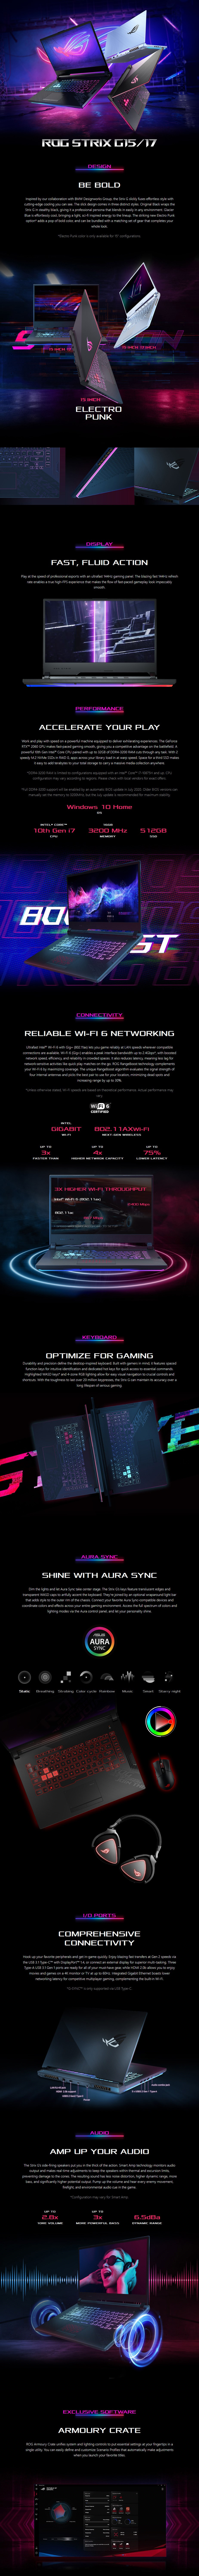 "ASUS ROG Strix G15 15.6"" 144Hz Gaming Laptop i7-10750H 16GB 512GB 2060 W10H - Overview 1"